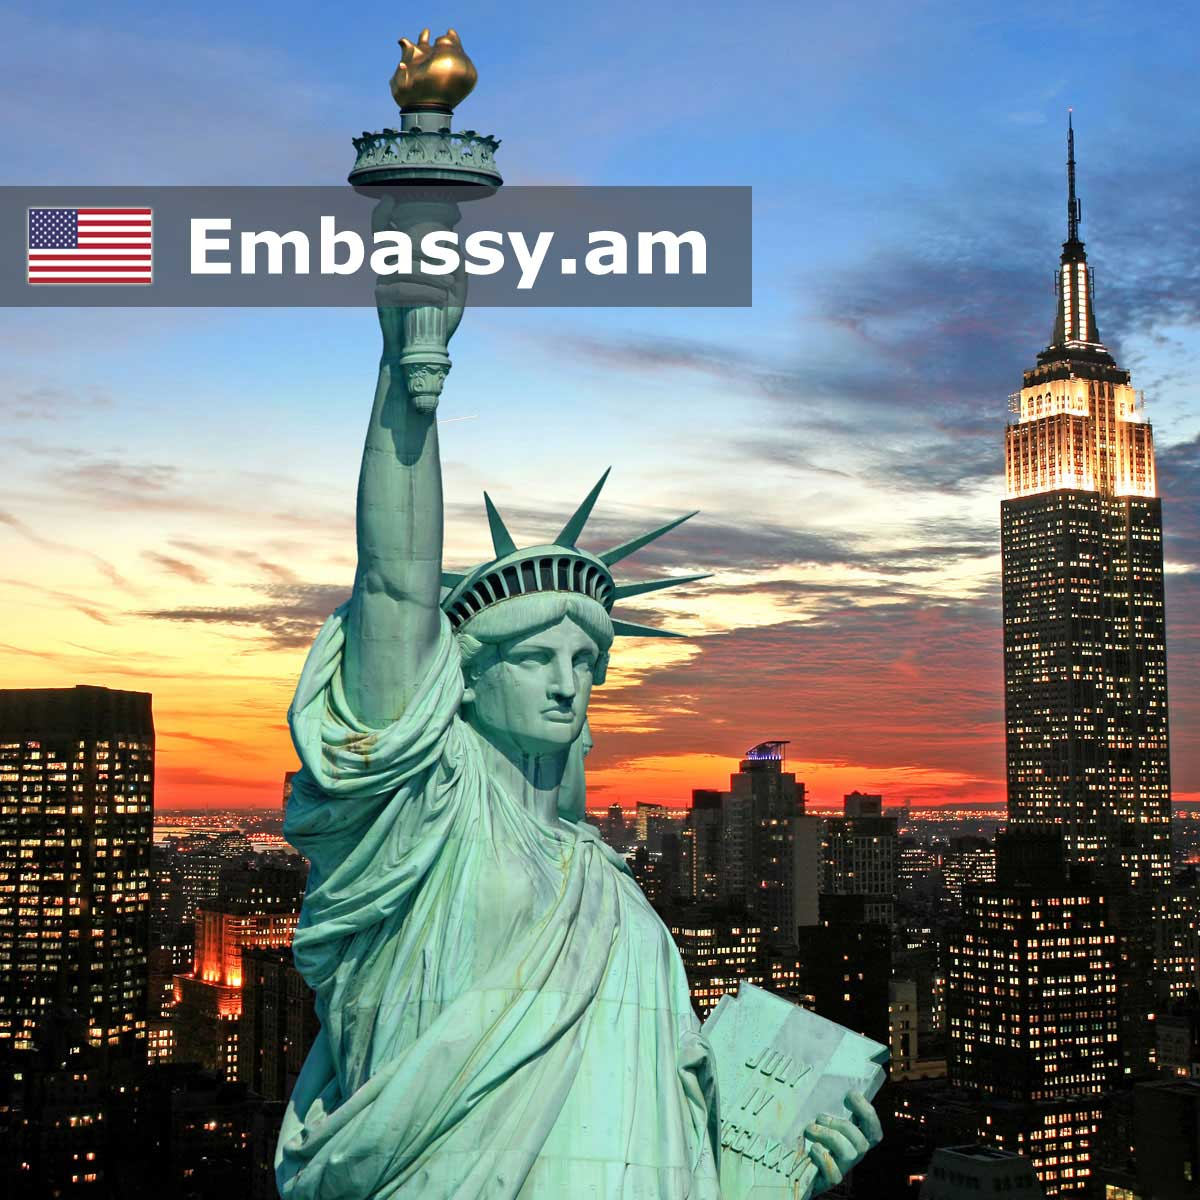 New York - Hotels in United States of America - Embassy.am